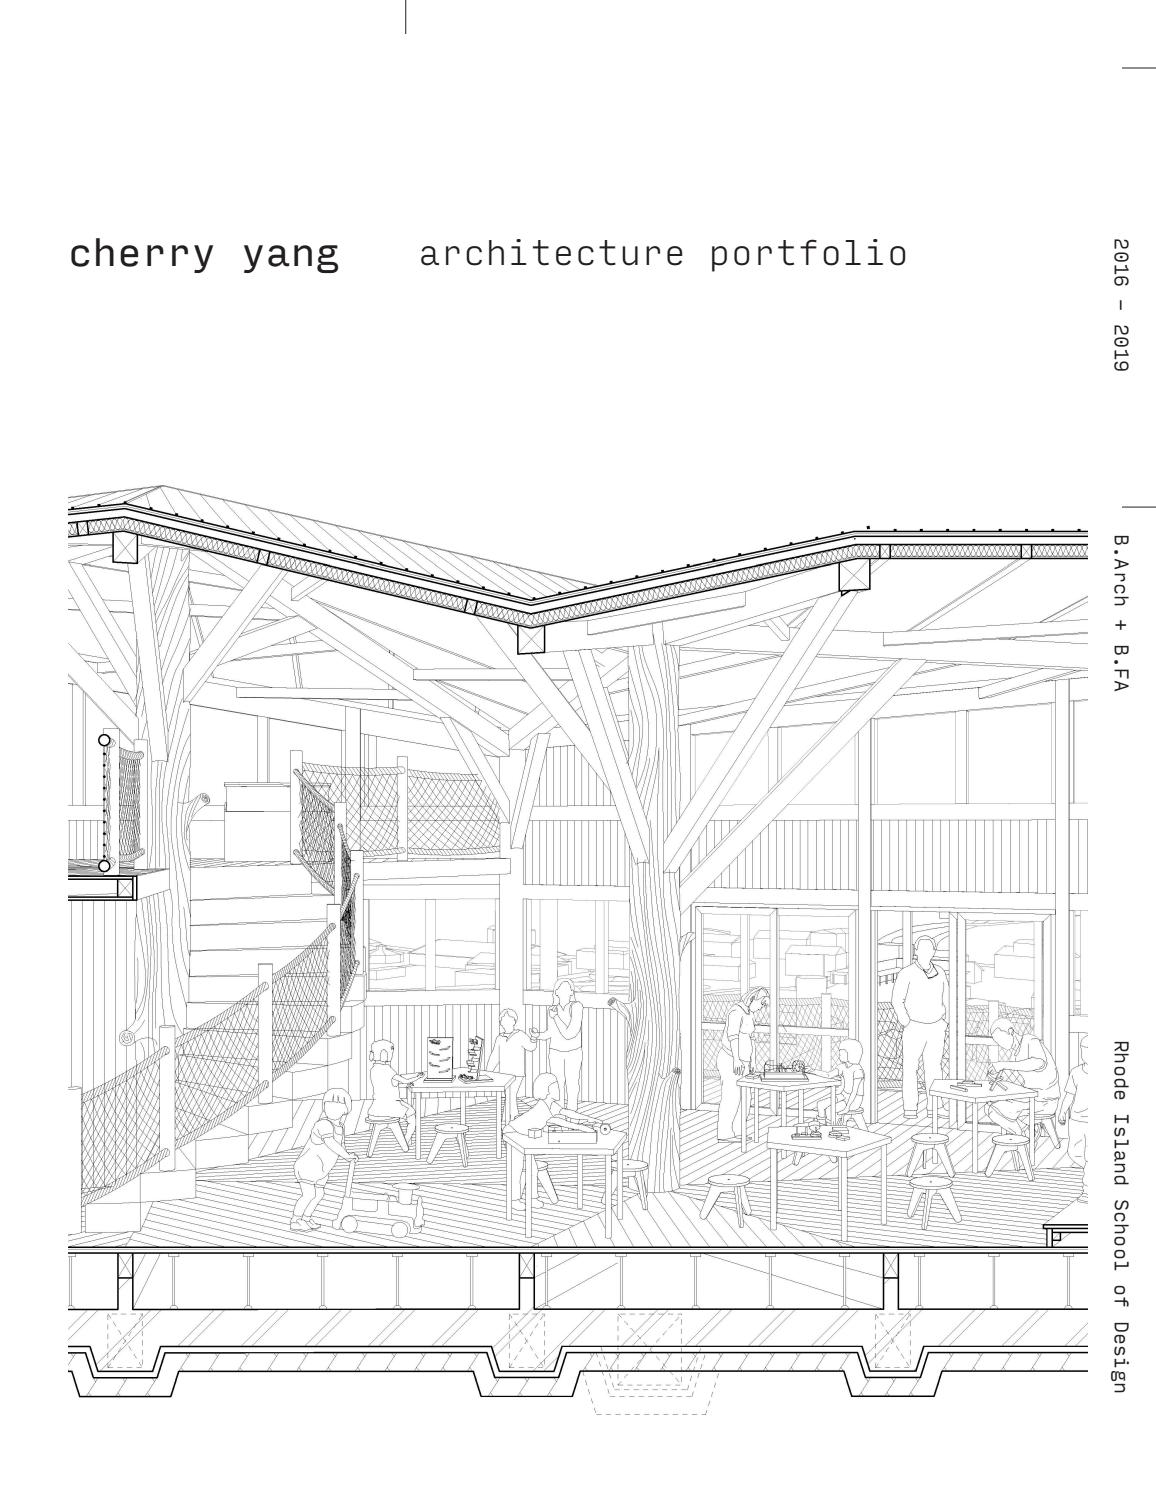 hight resolution of cherry yang risd portfolio 2019